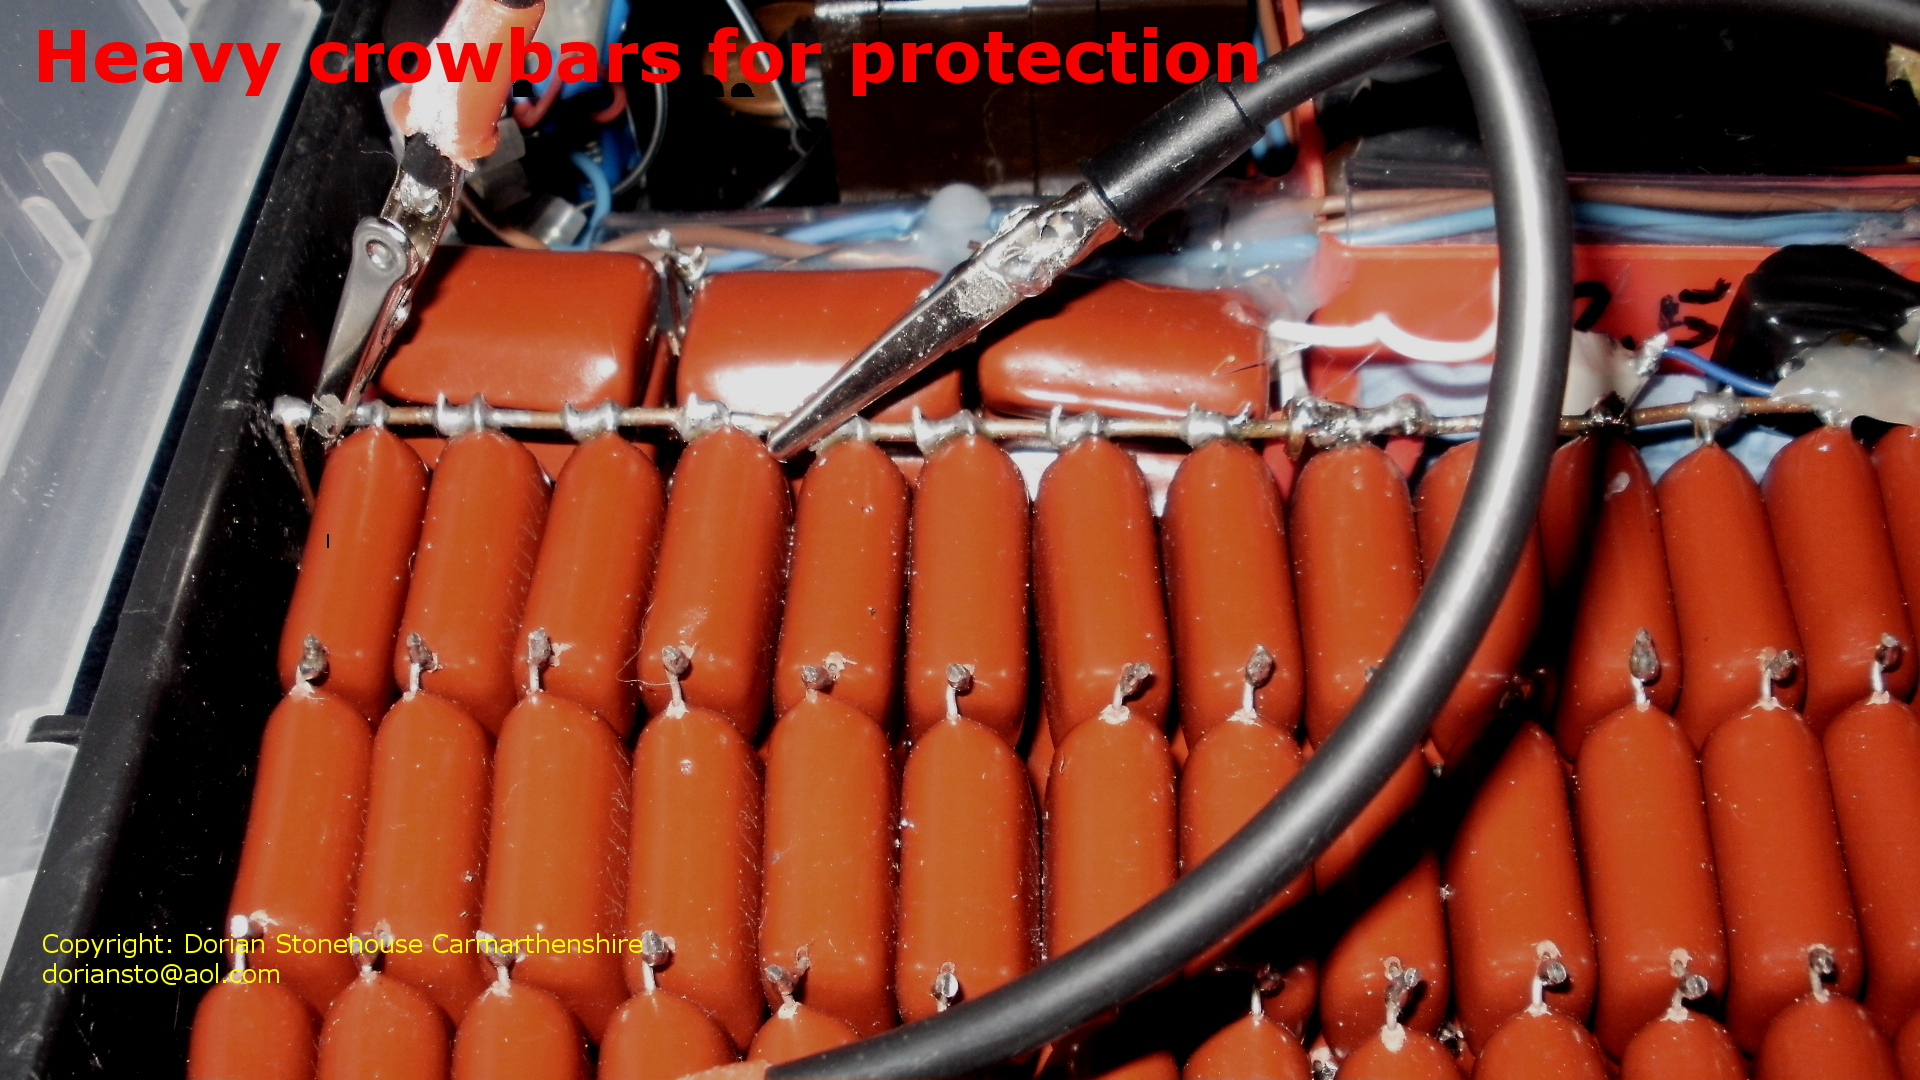 crowbar protection cable across capacitors